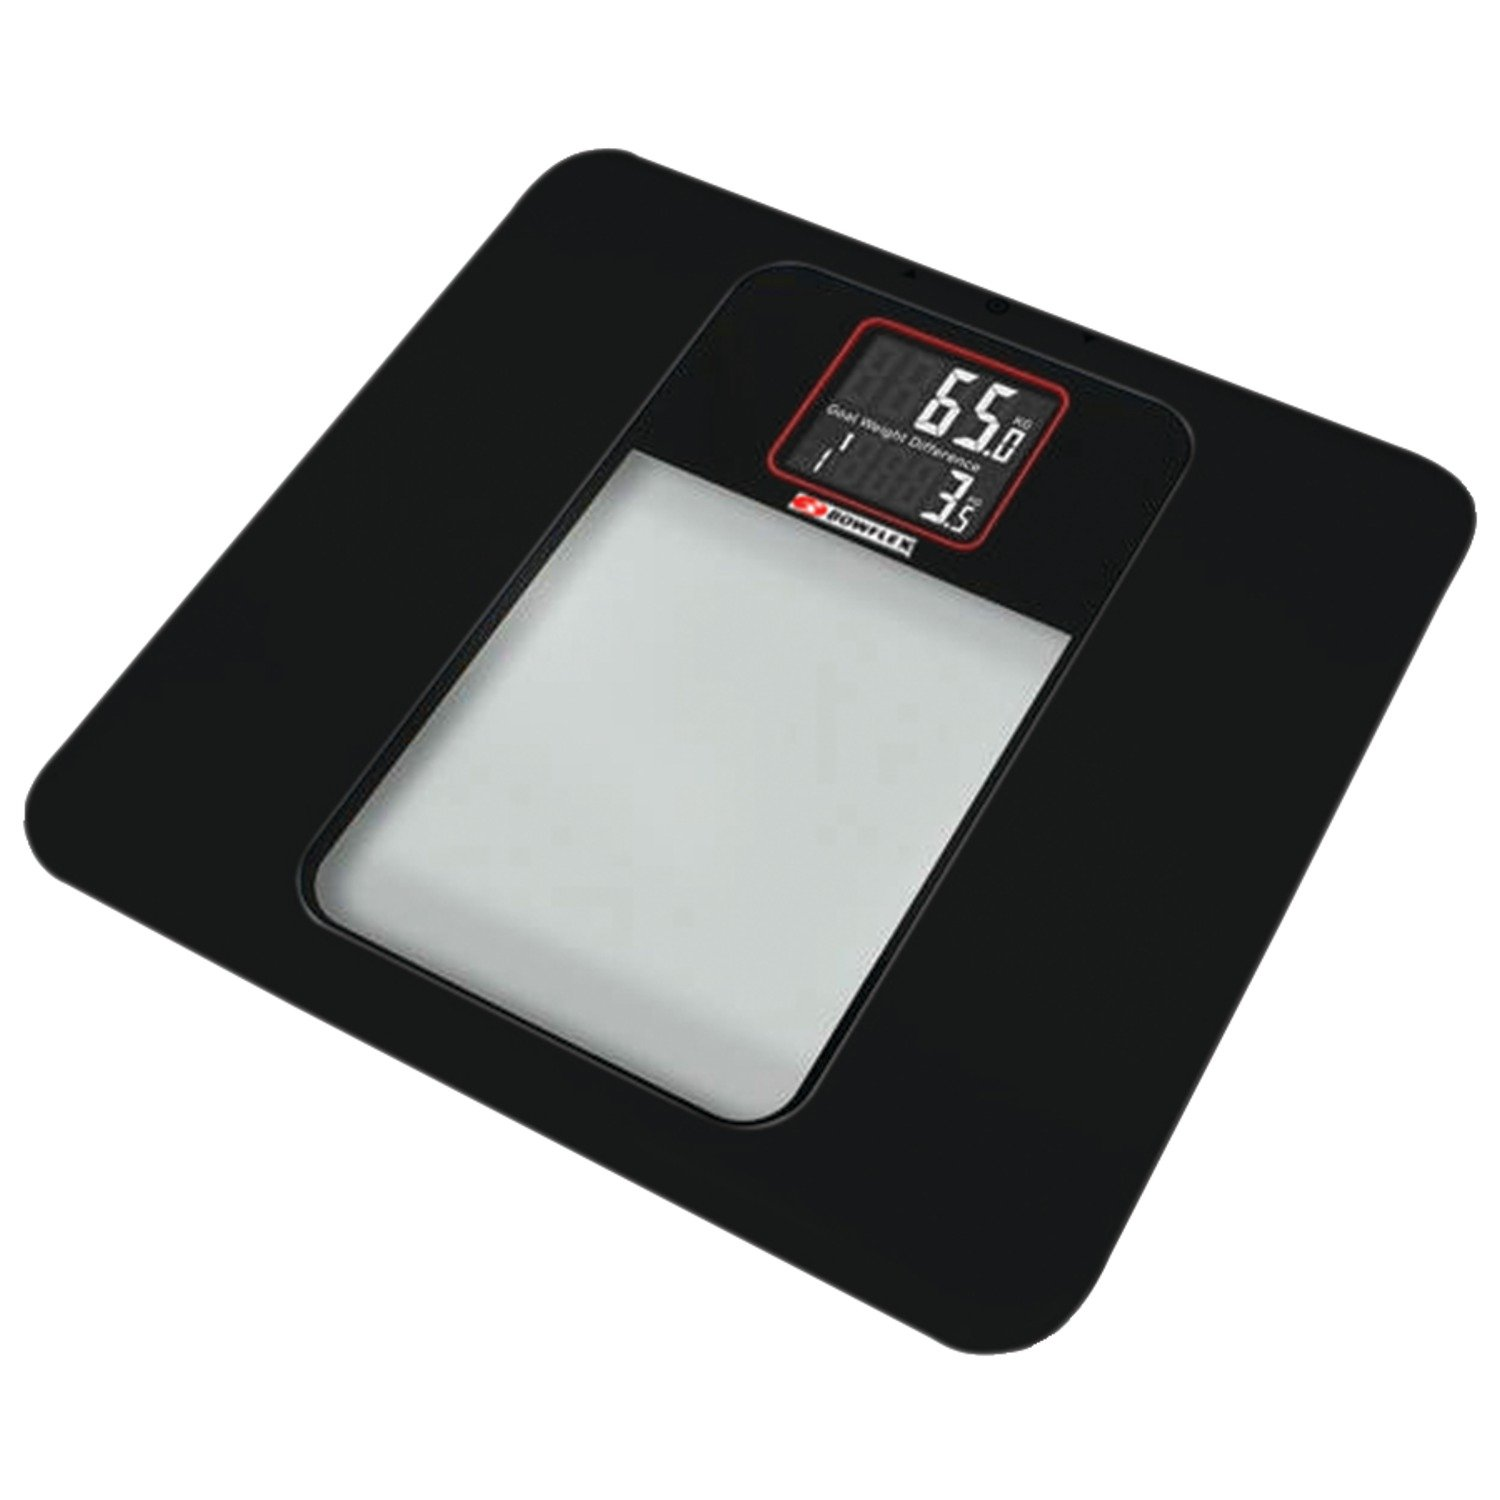 Bowflex 7559BOW Caloric and BMI Monitor Scale